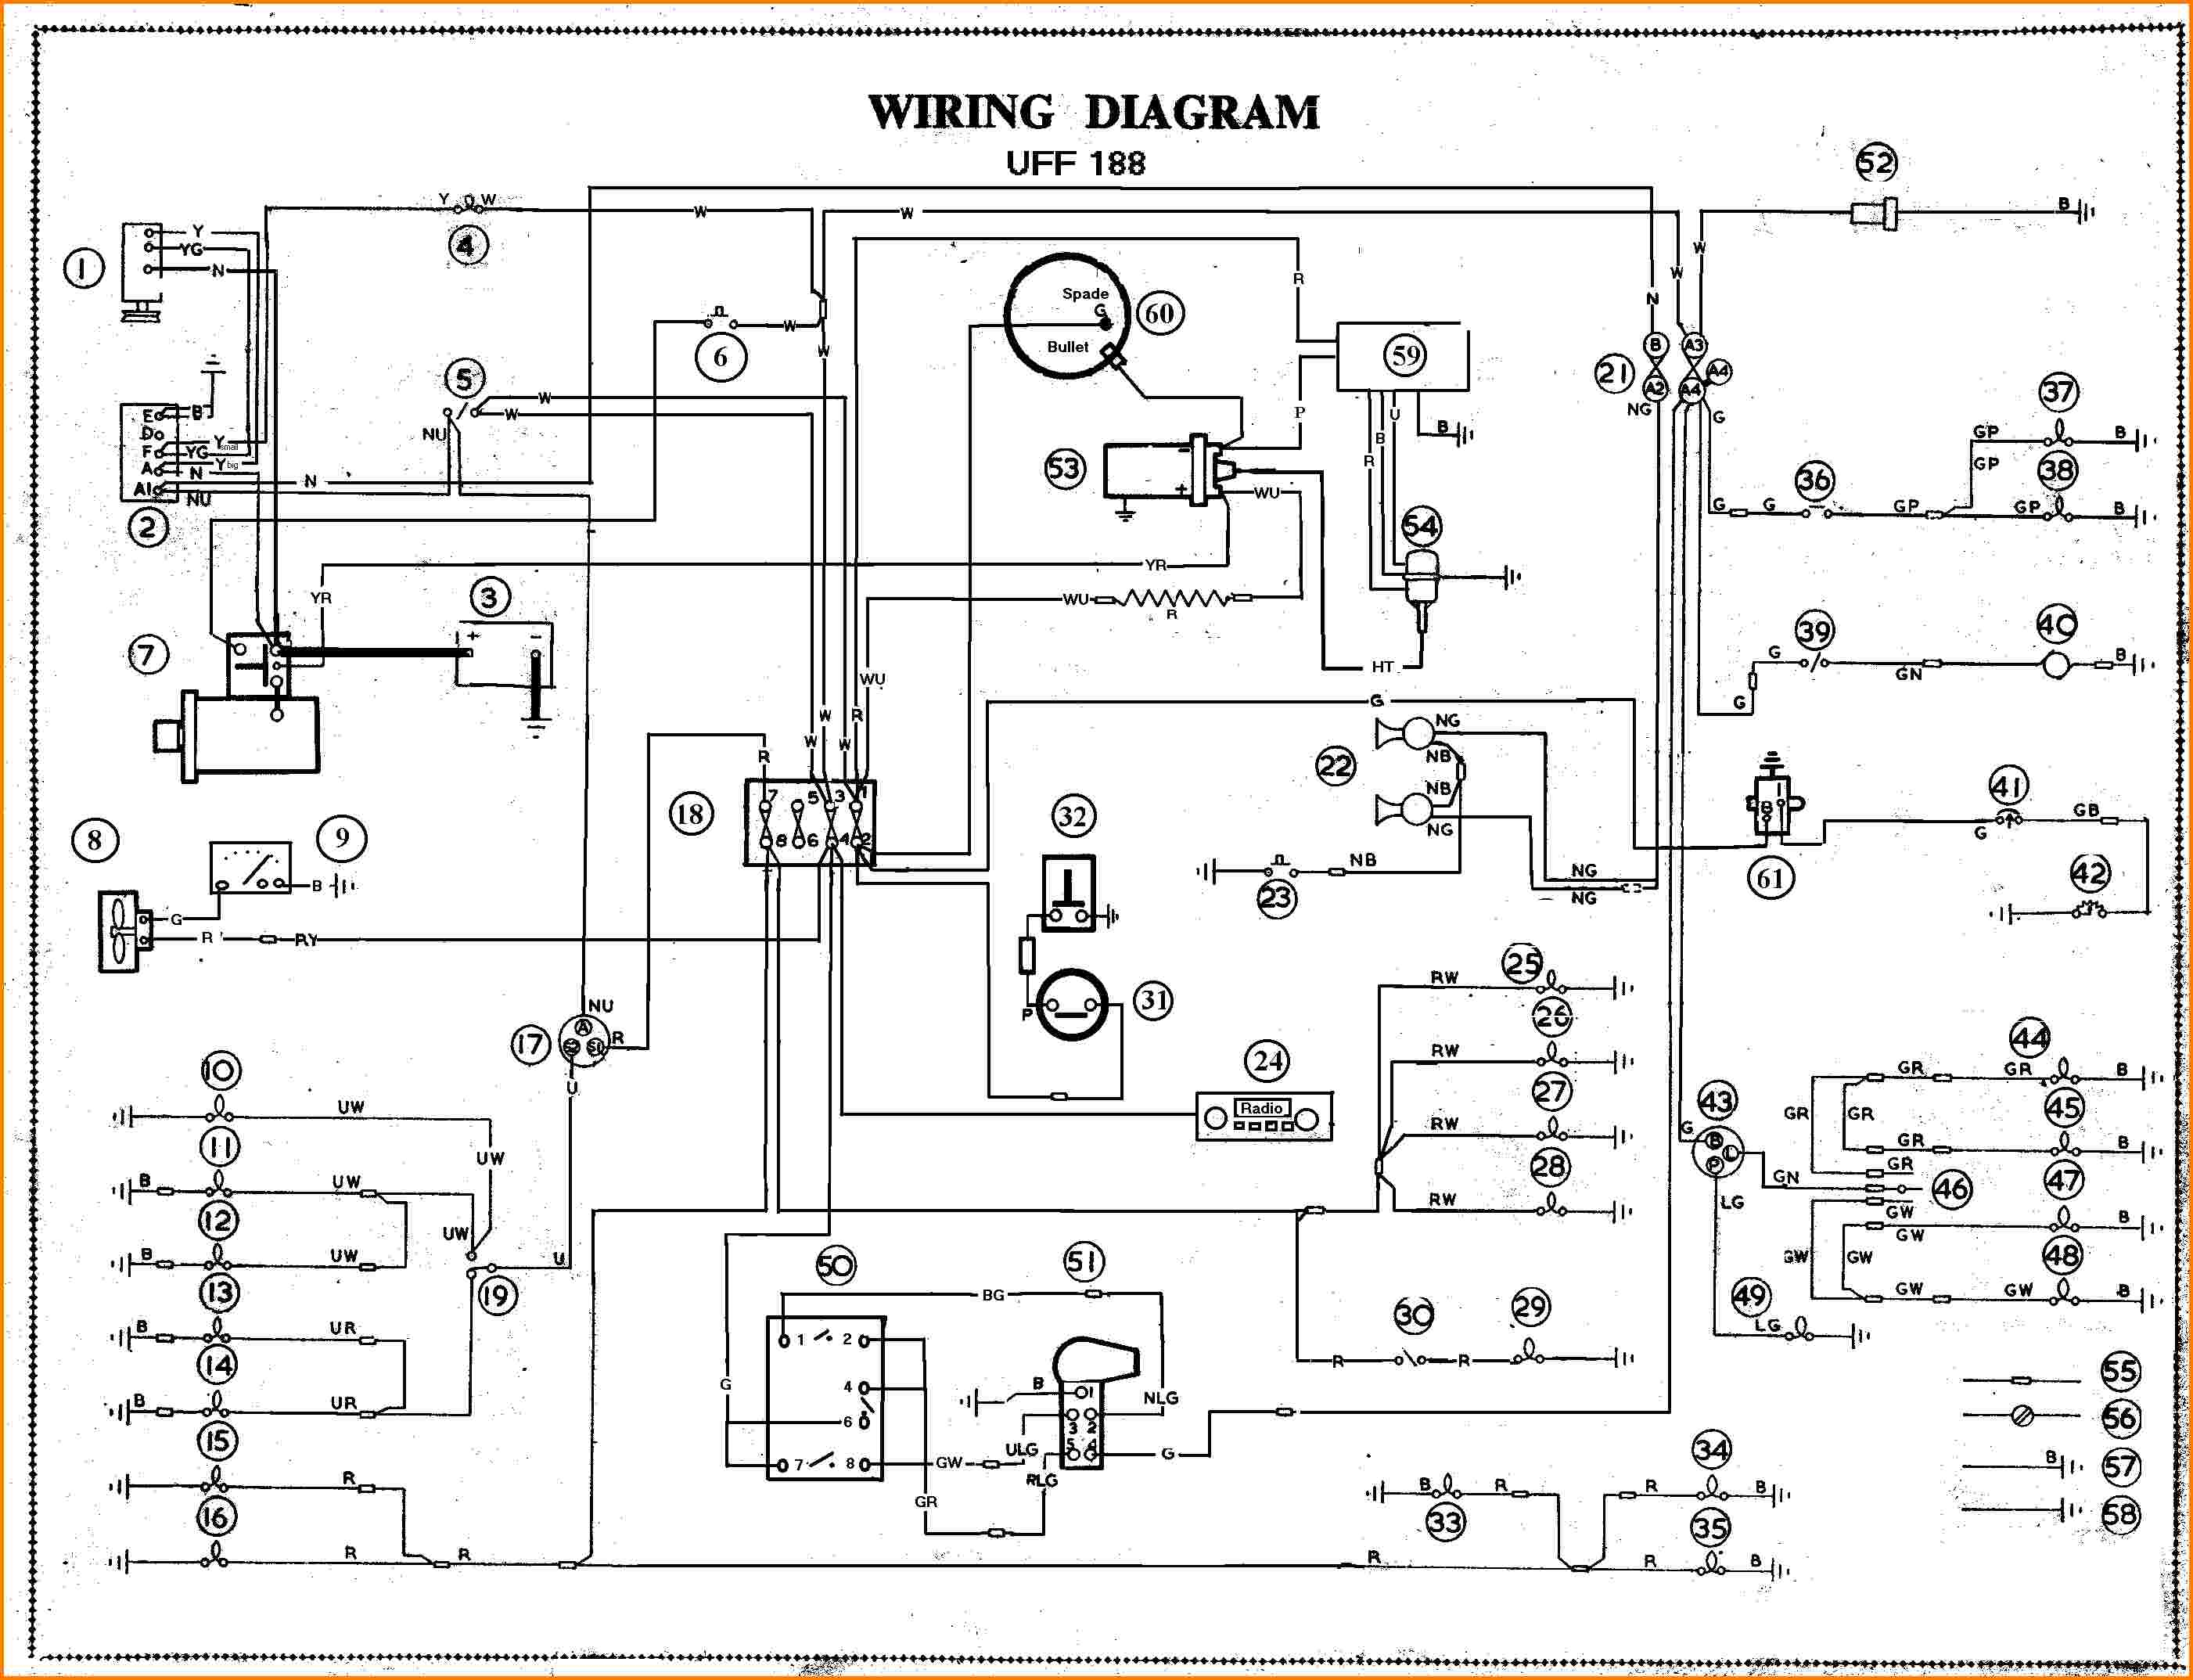 Wiring Schematics For Cars - Wiring Diagram Data - Club Car Wiring Diagram